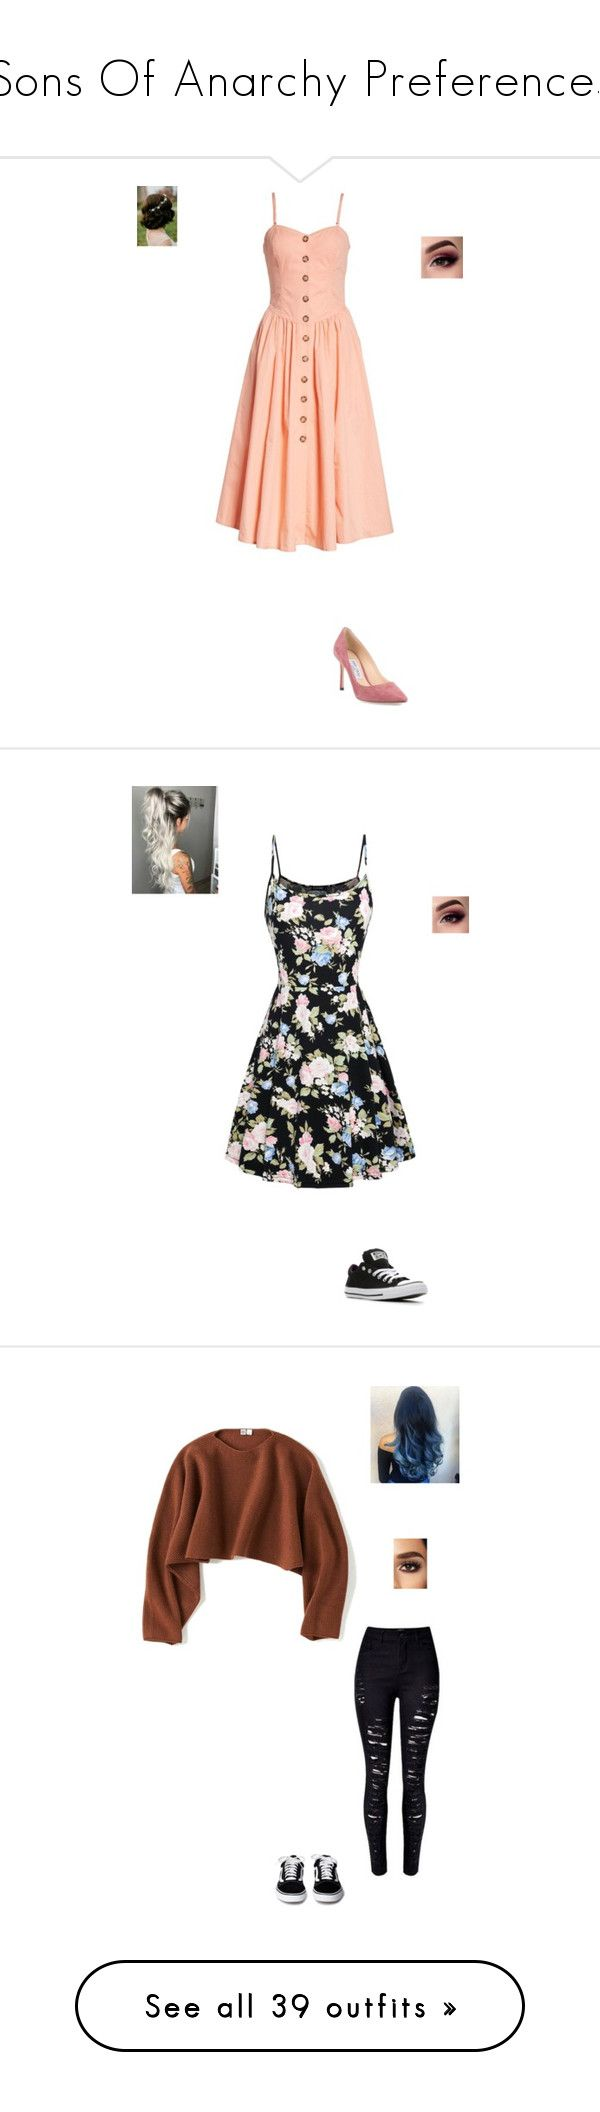 """""""Sons Of Anarchy Preferences"""" by maryvarleyrox ❤ liked on Polyvore featuring Free People, Jimmy Choo, Converse, Uniqlo, River Island, New Look, WithChic, Taya, ASAP and Frye"""